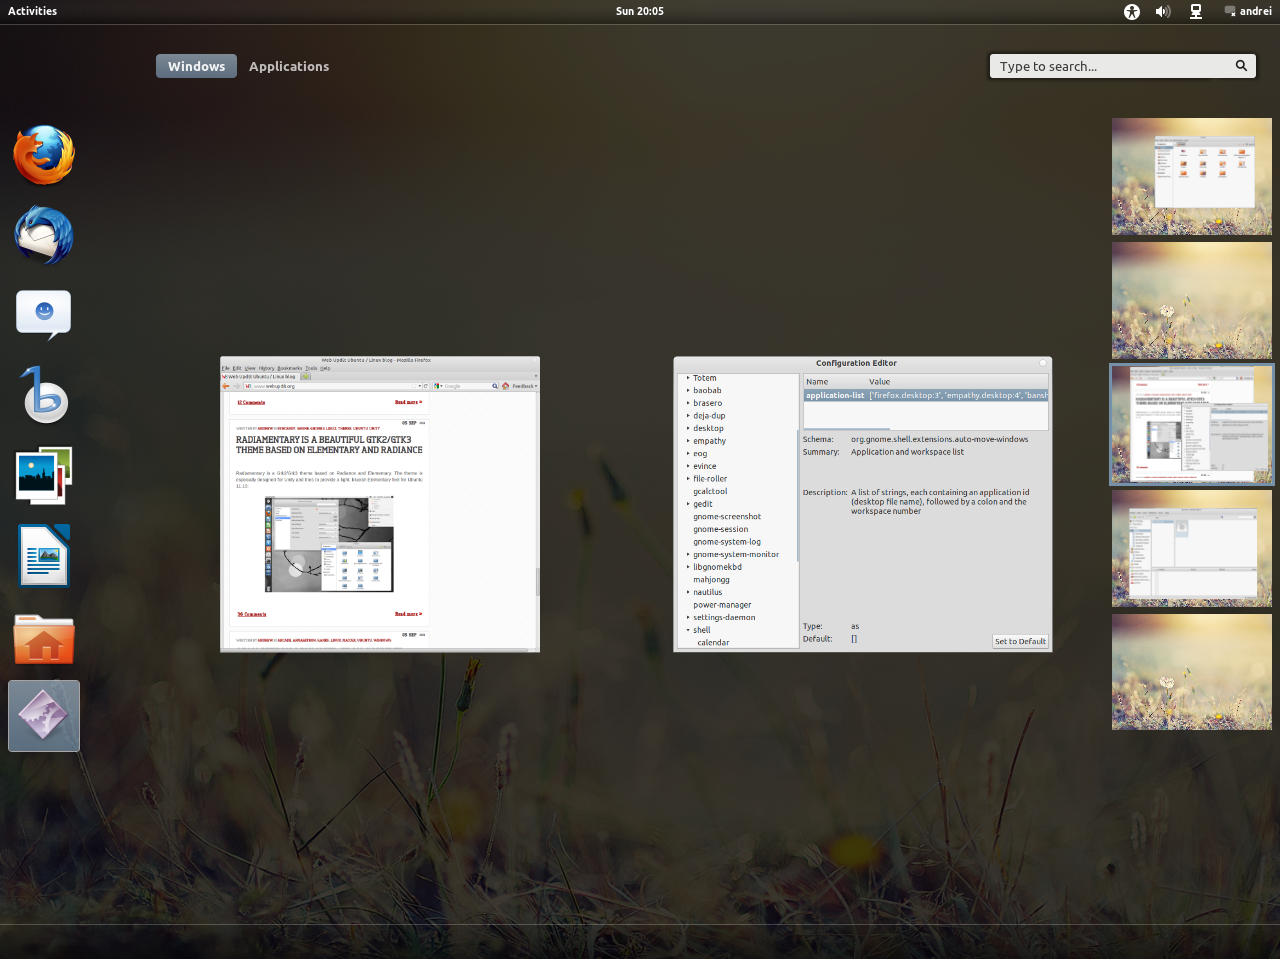 GNOME Shell: Make Applications Start On A Certain Workspace